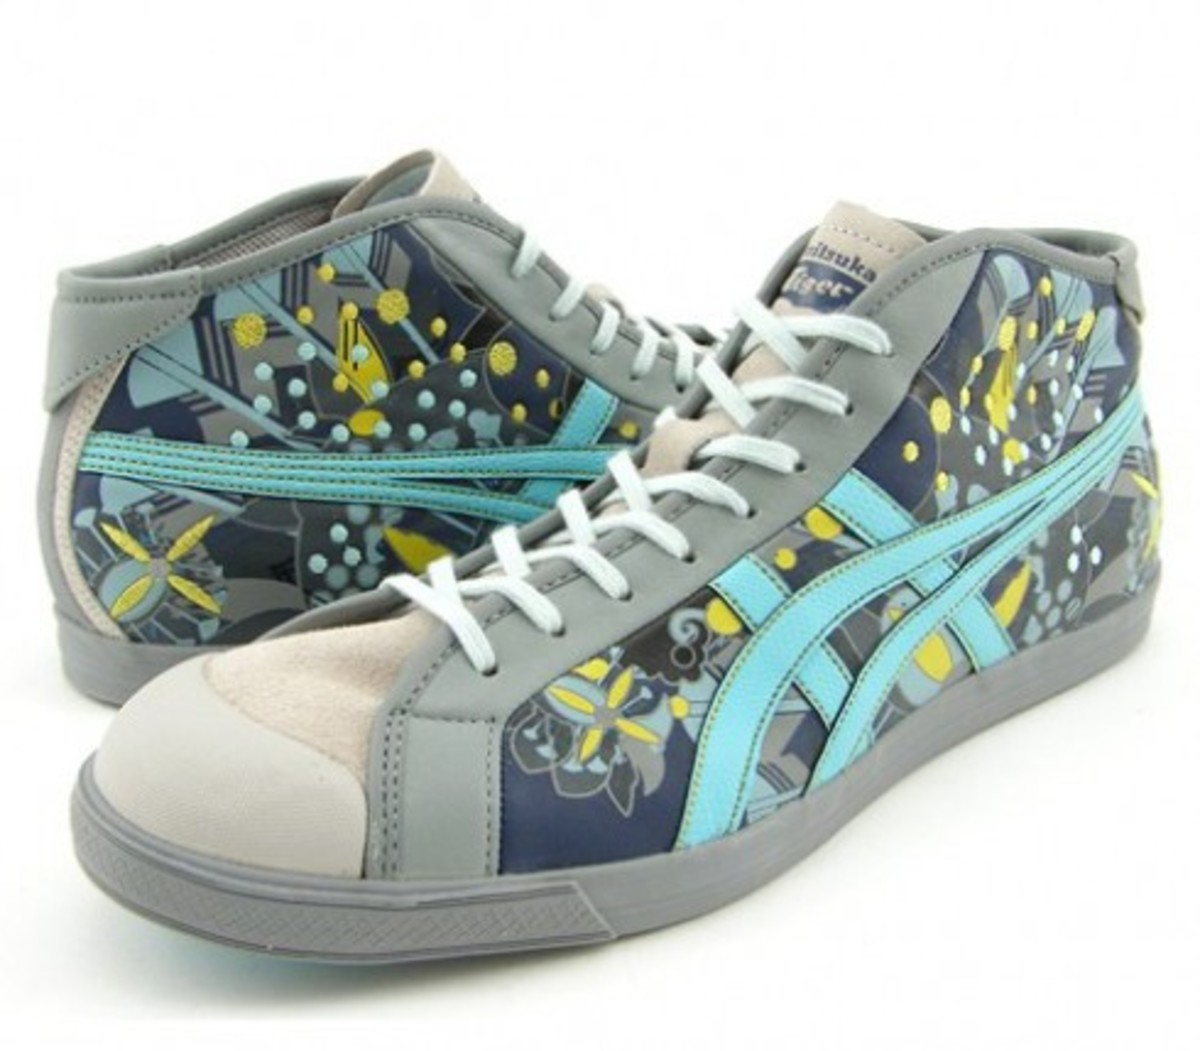 Onitsuka Tiger - Chinese Zodiac Collection - Coolidge | Rat | Ox | Tiger